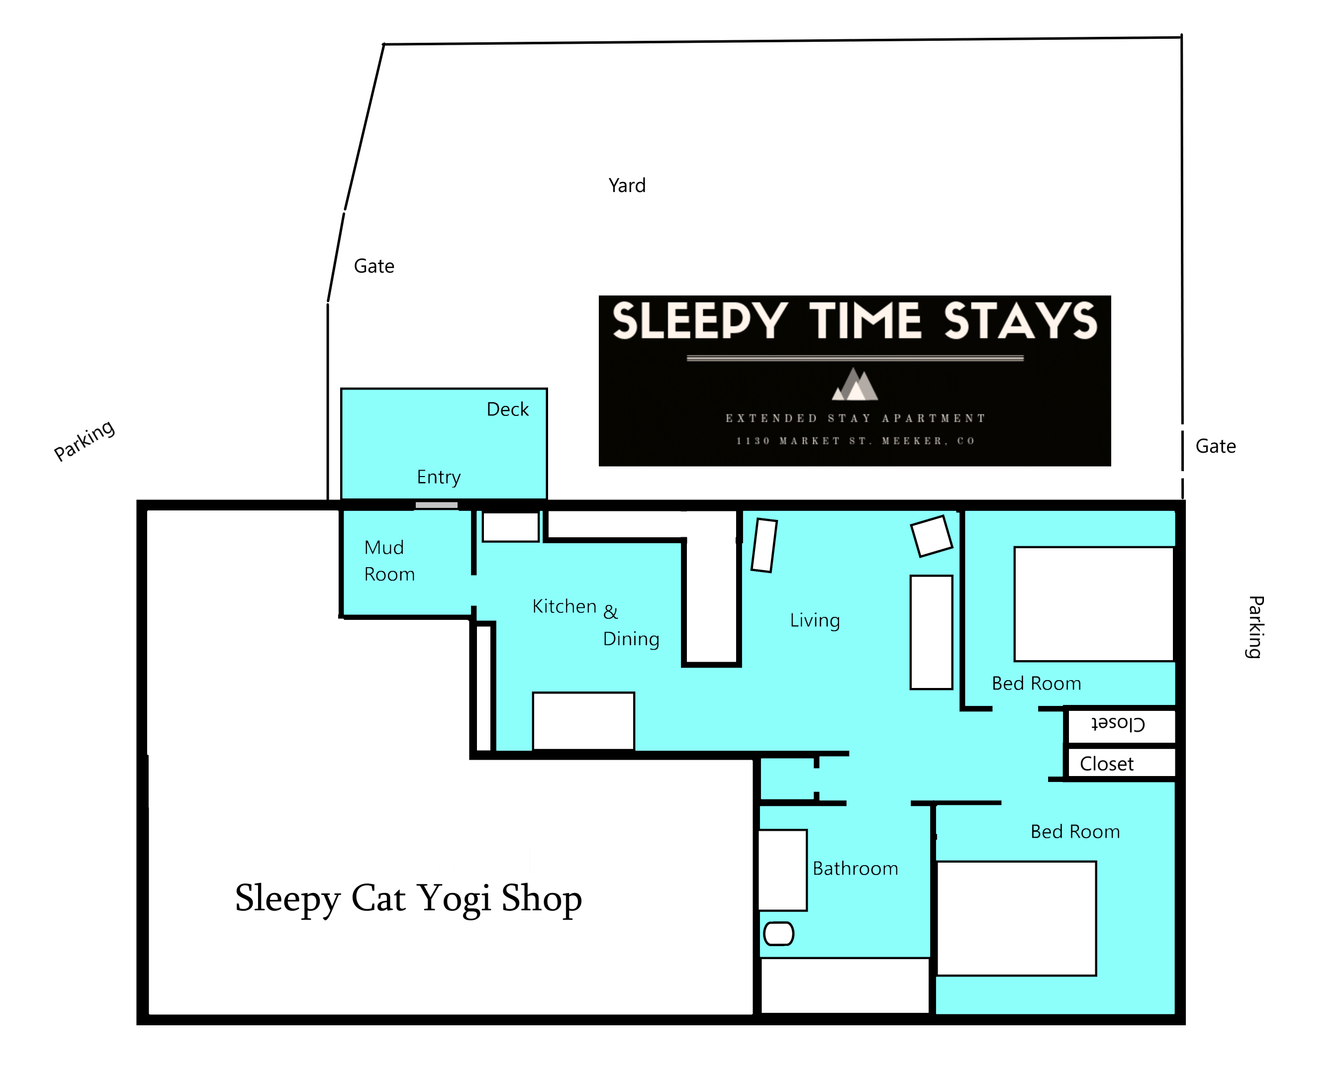 Sleepy Time Stays Apartment Layout.png